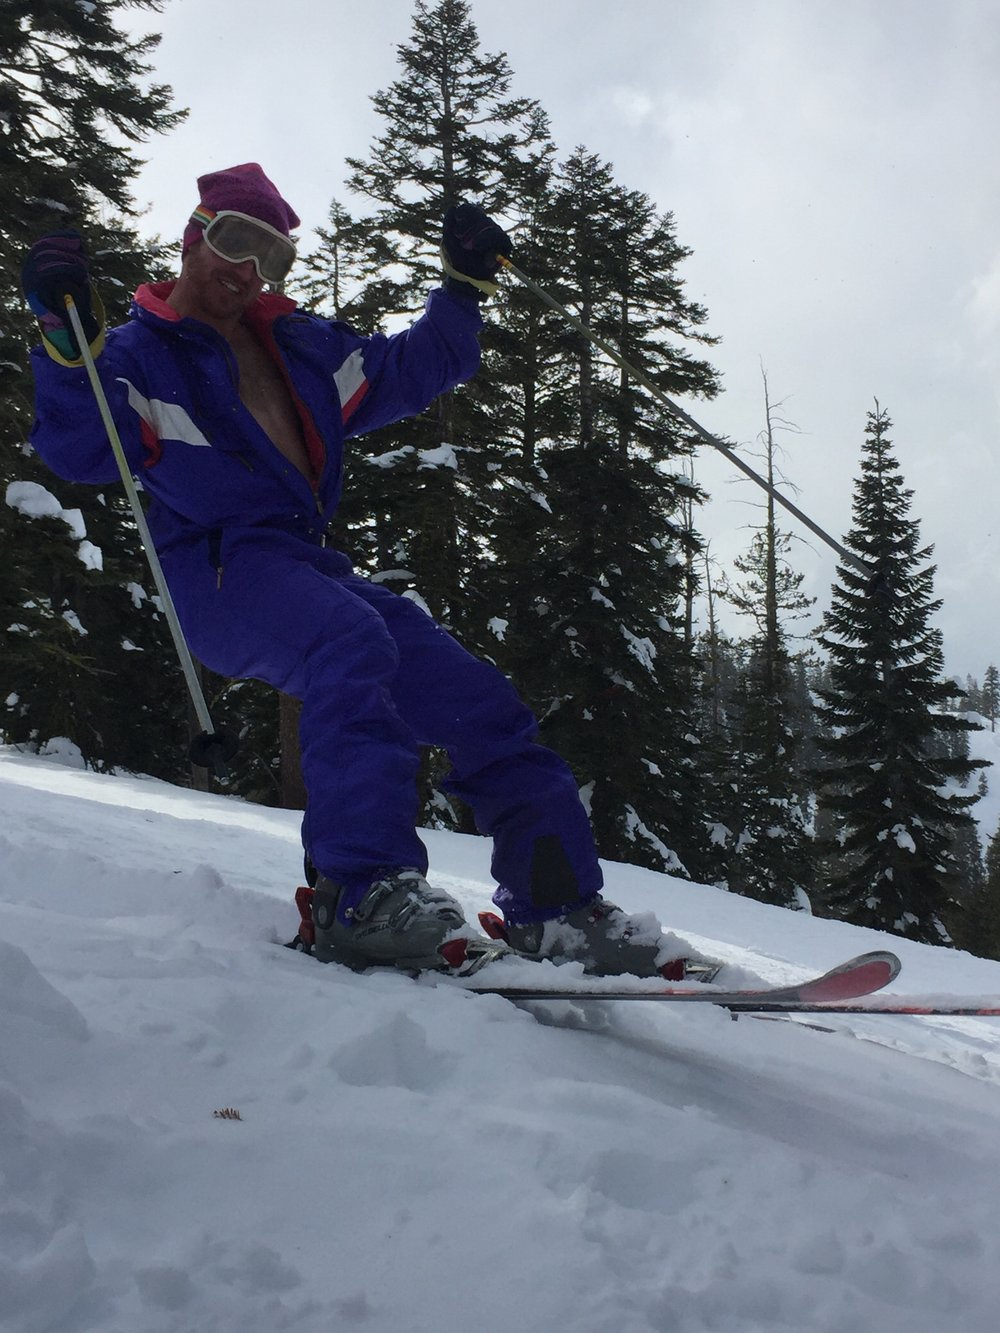 Brother-in-Law David, while also not a runner, did win 17 gold medals for the 1984 US Olympic alpine ski team